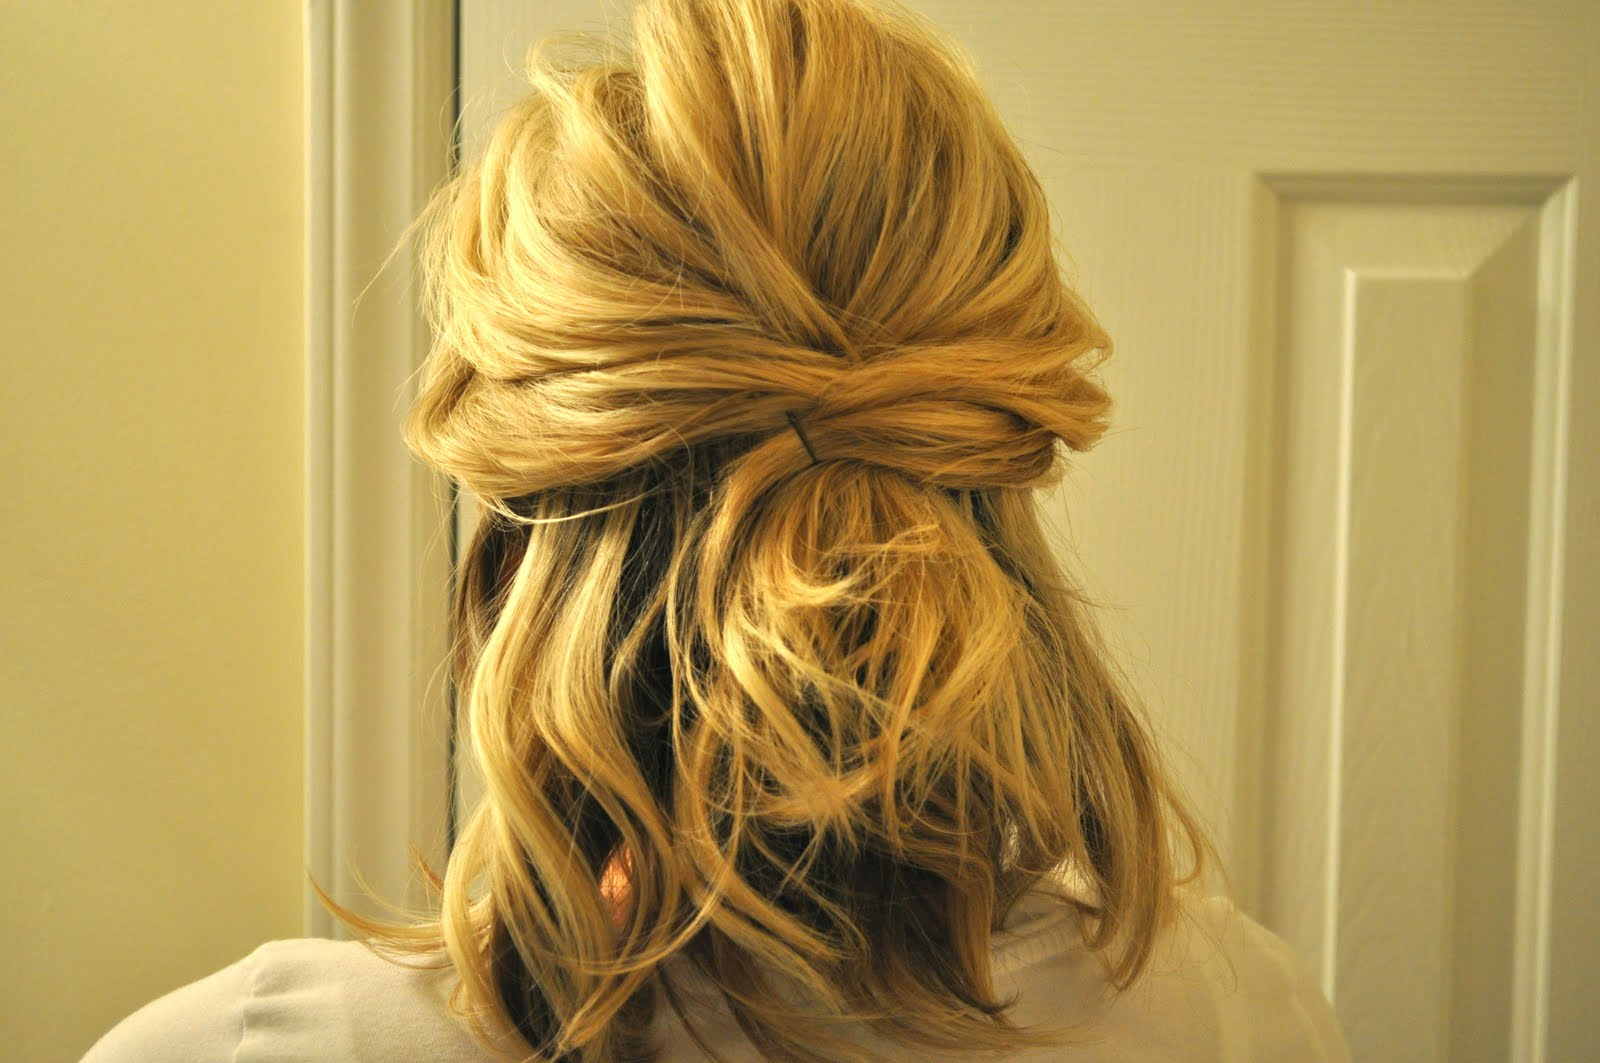 Hair Styles You Can Do For Short Hair: 4 Modern Ideas For Classic Hairstyles